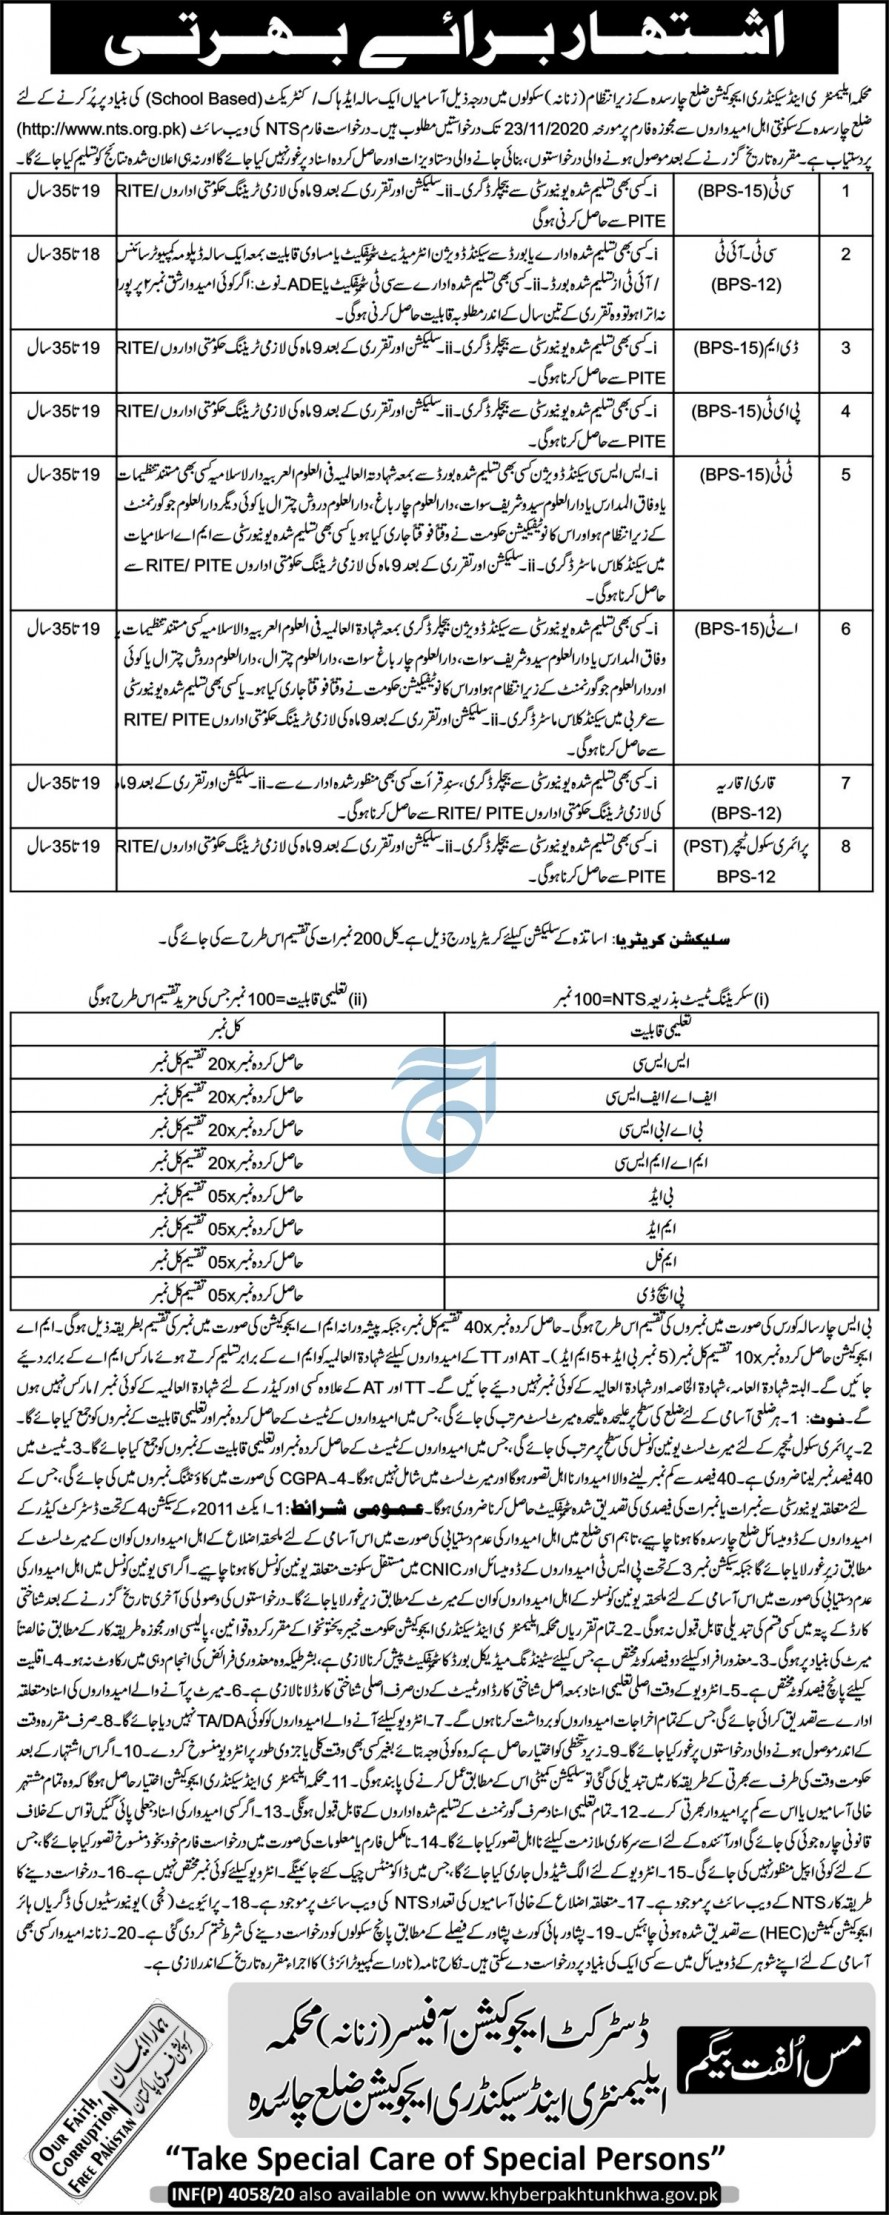 Elementary and Secondary Education Department KPK Jobs - Latest Teaching Jobs in Lakki Marwat, Charsadda - Download Job Application Form - www.nts.org.pk